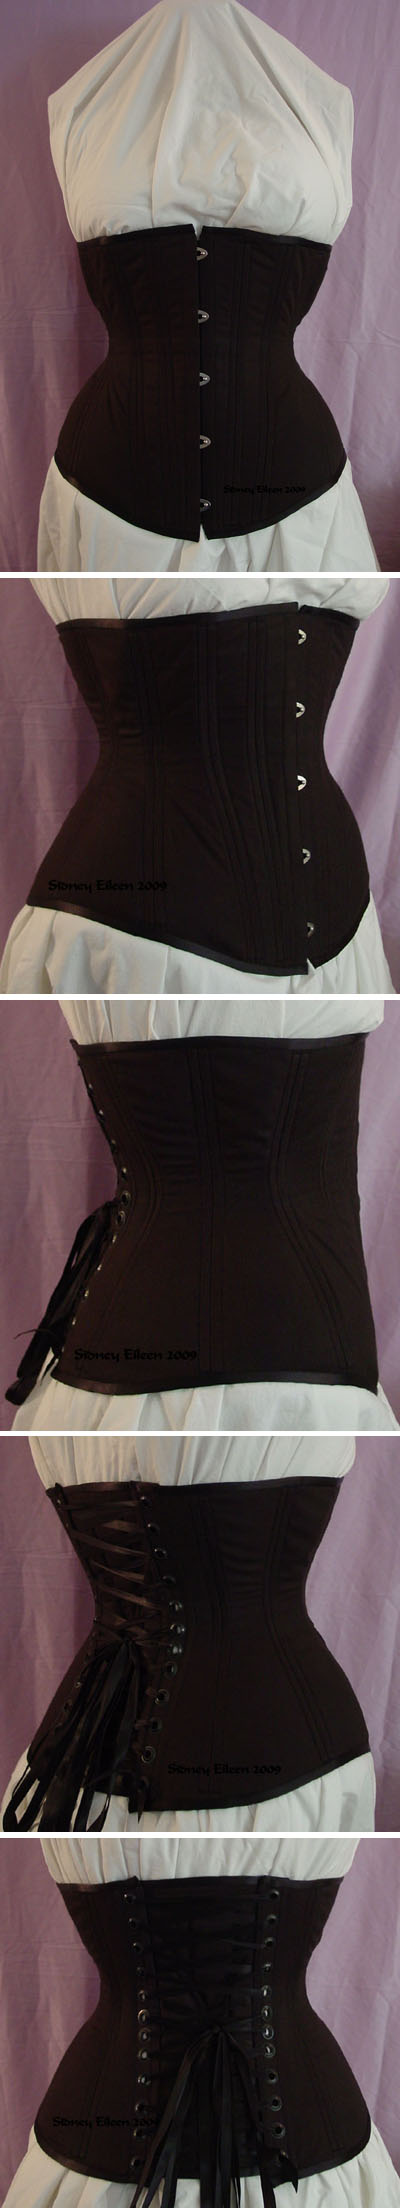 Plain Black Underbust - All Views, by Sidney Eileen